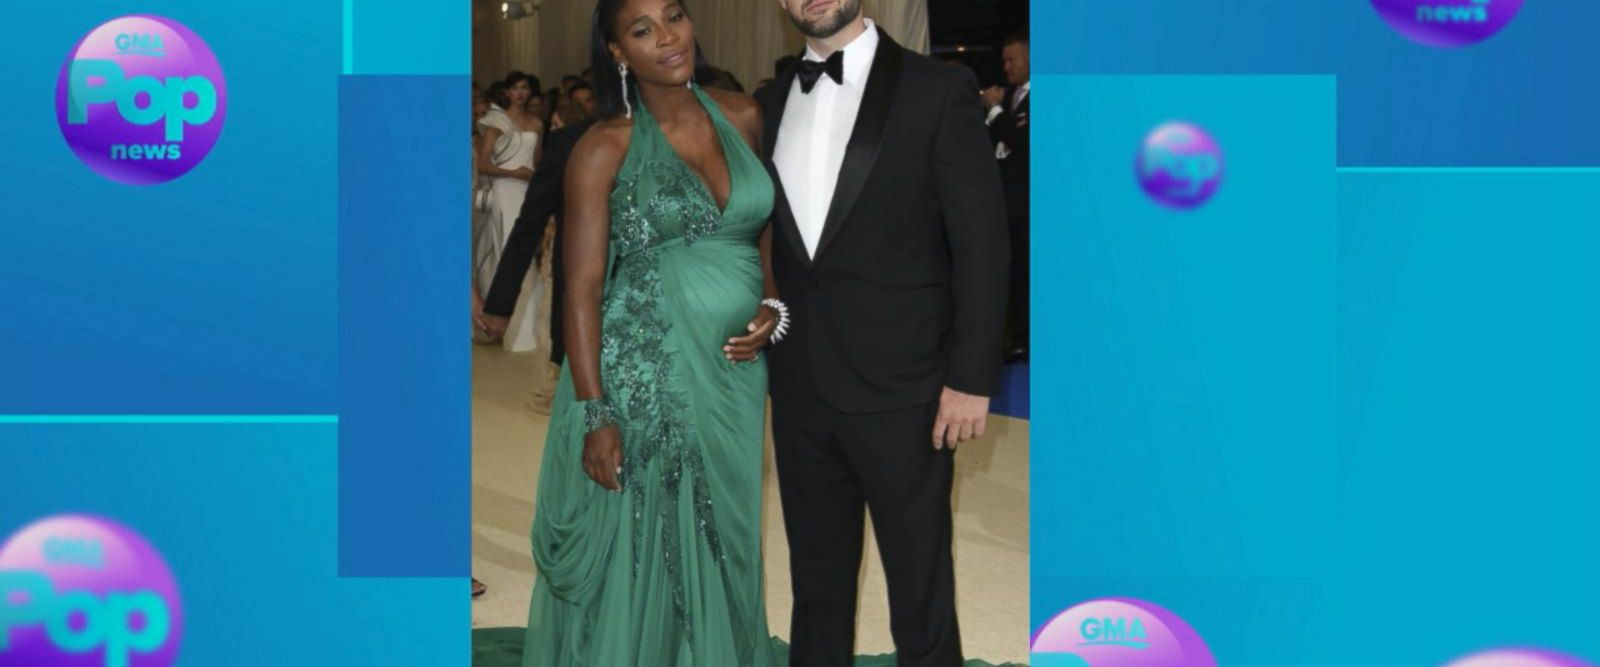 VIDEO: Serena Williams' fiancé shares about her unexpected 'pregnancy cravings' on Instagram